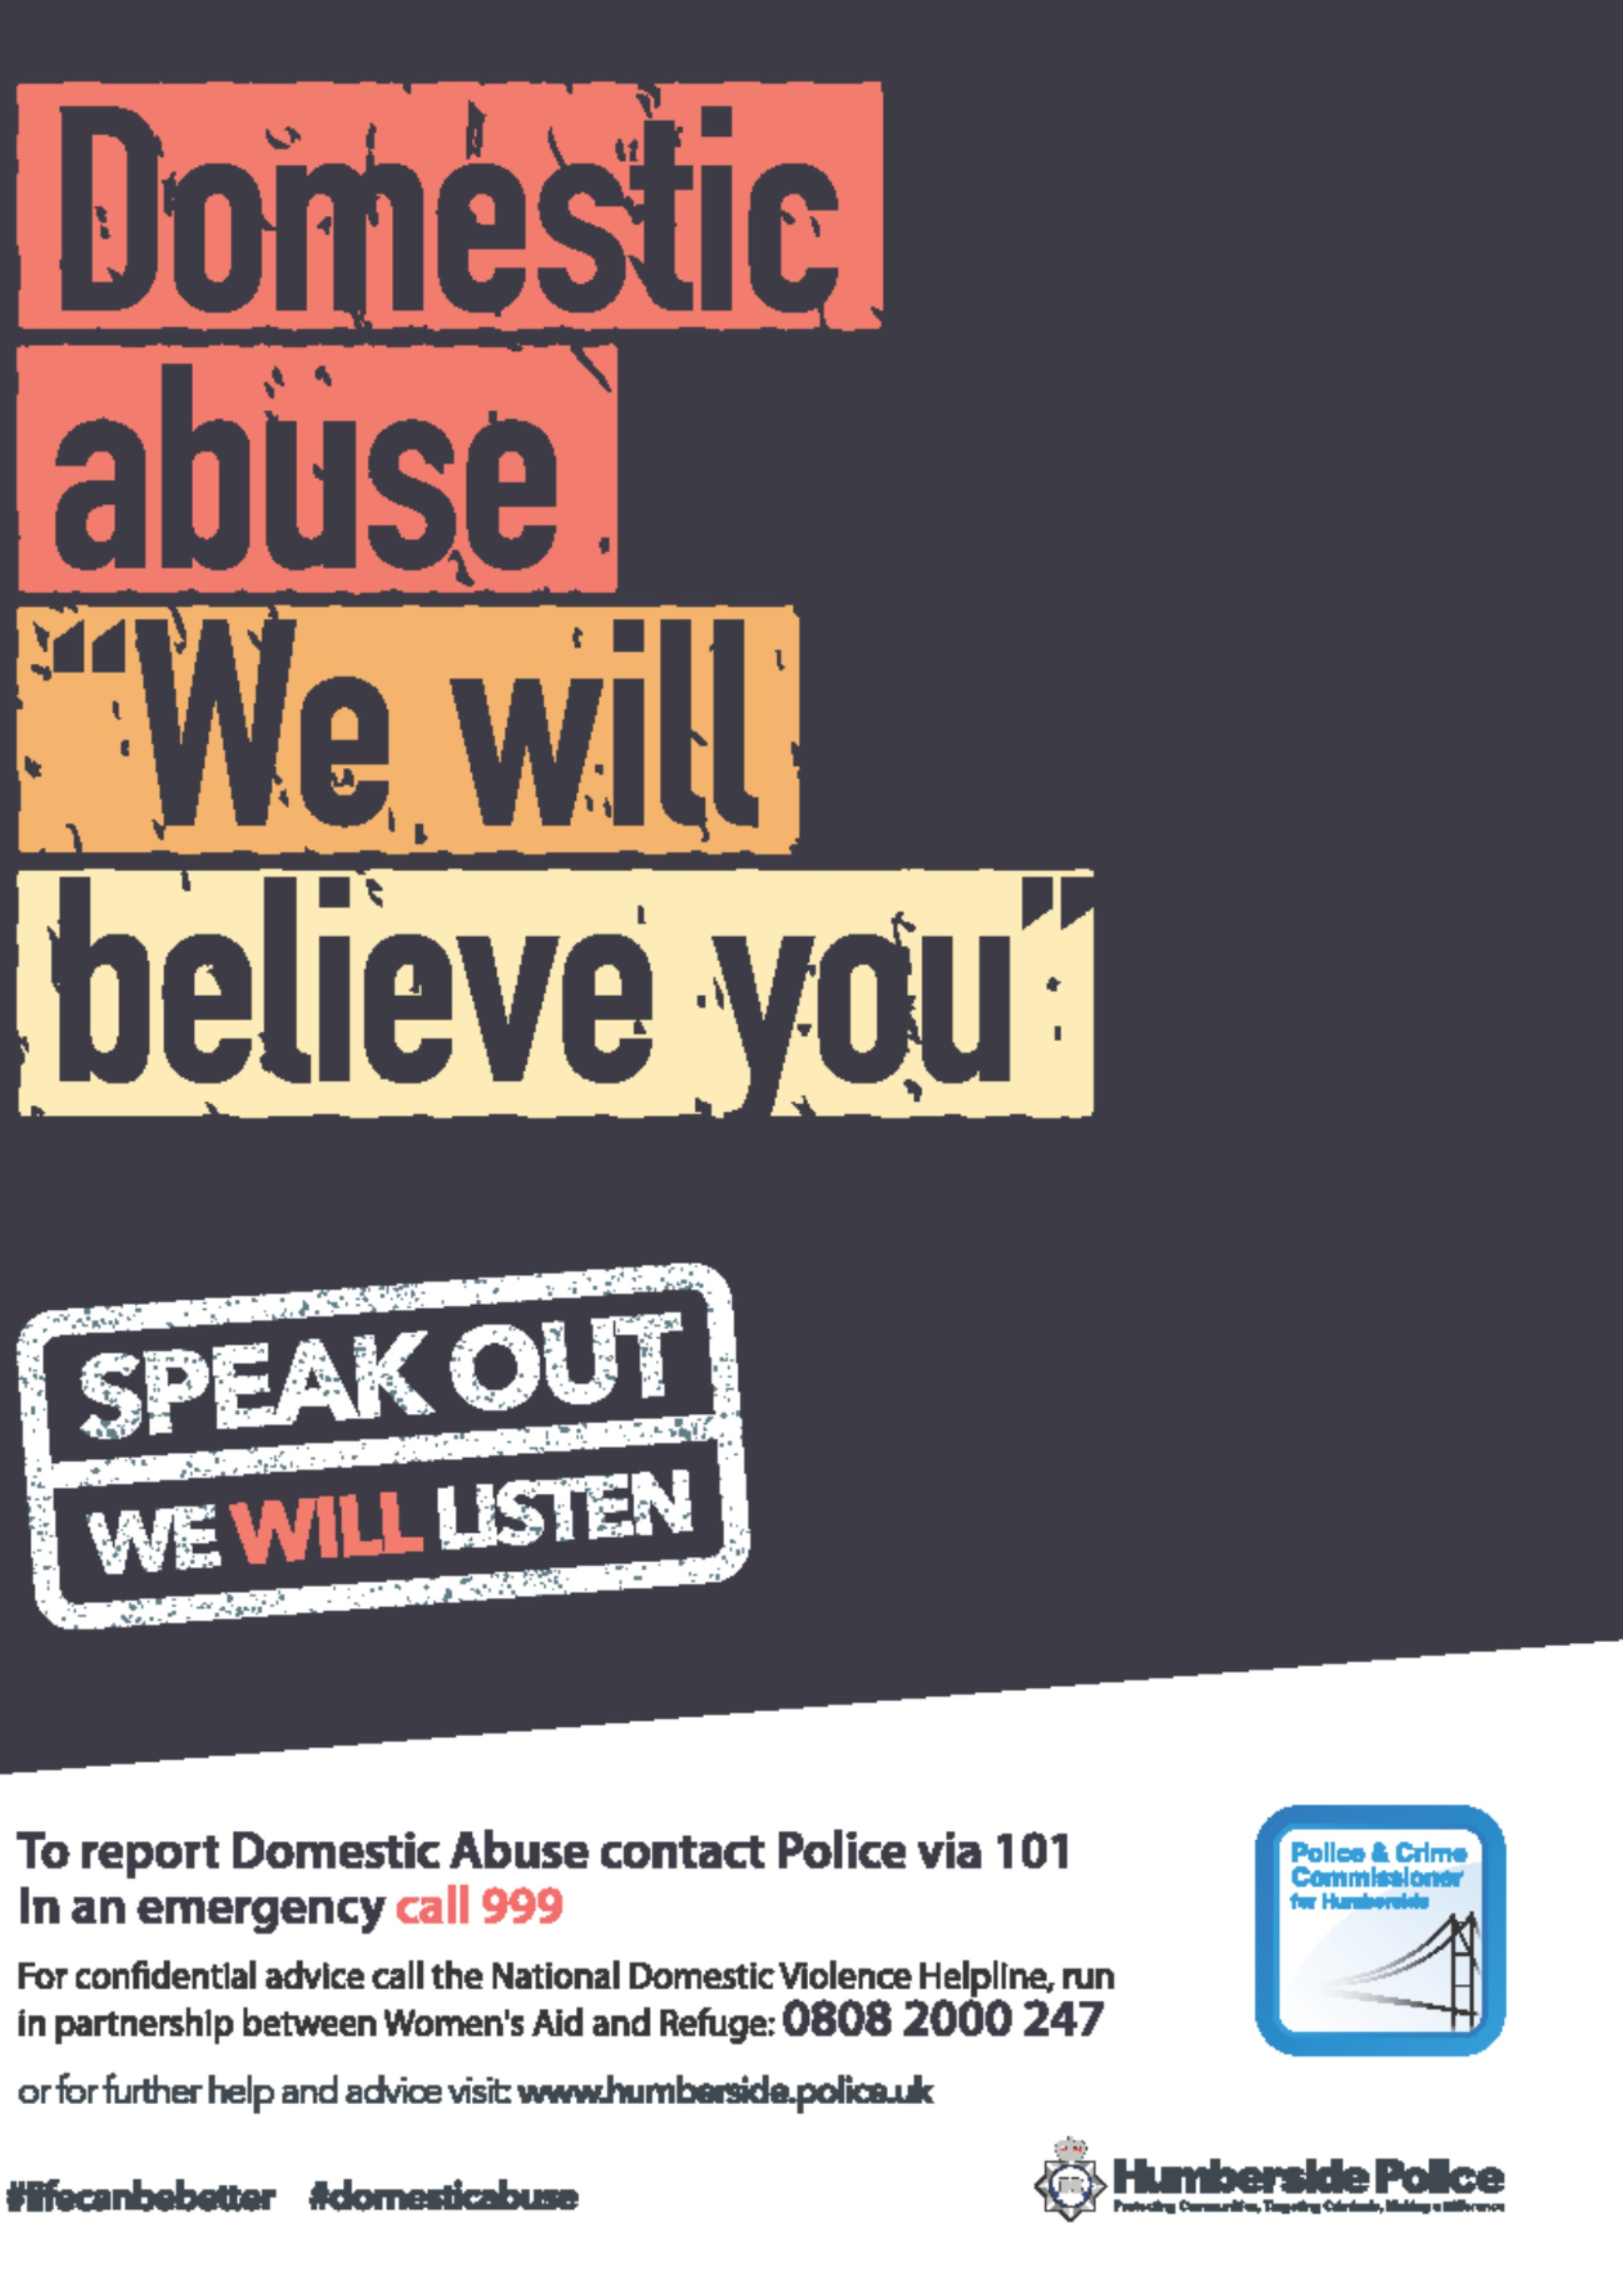 Humberside Police Domestic Abuse Campaign Poster 1